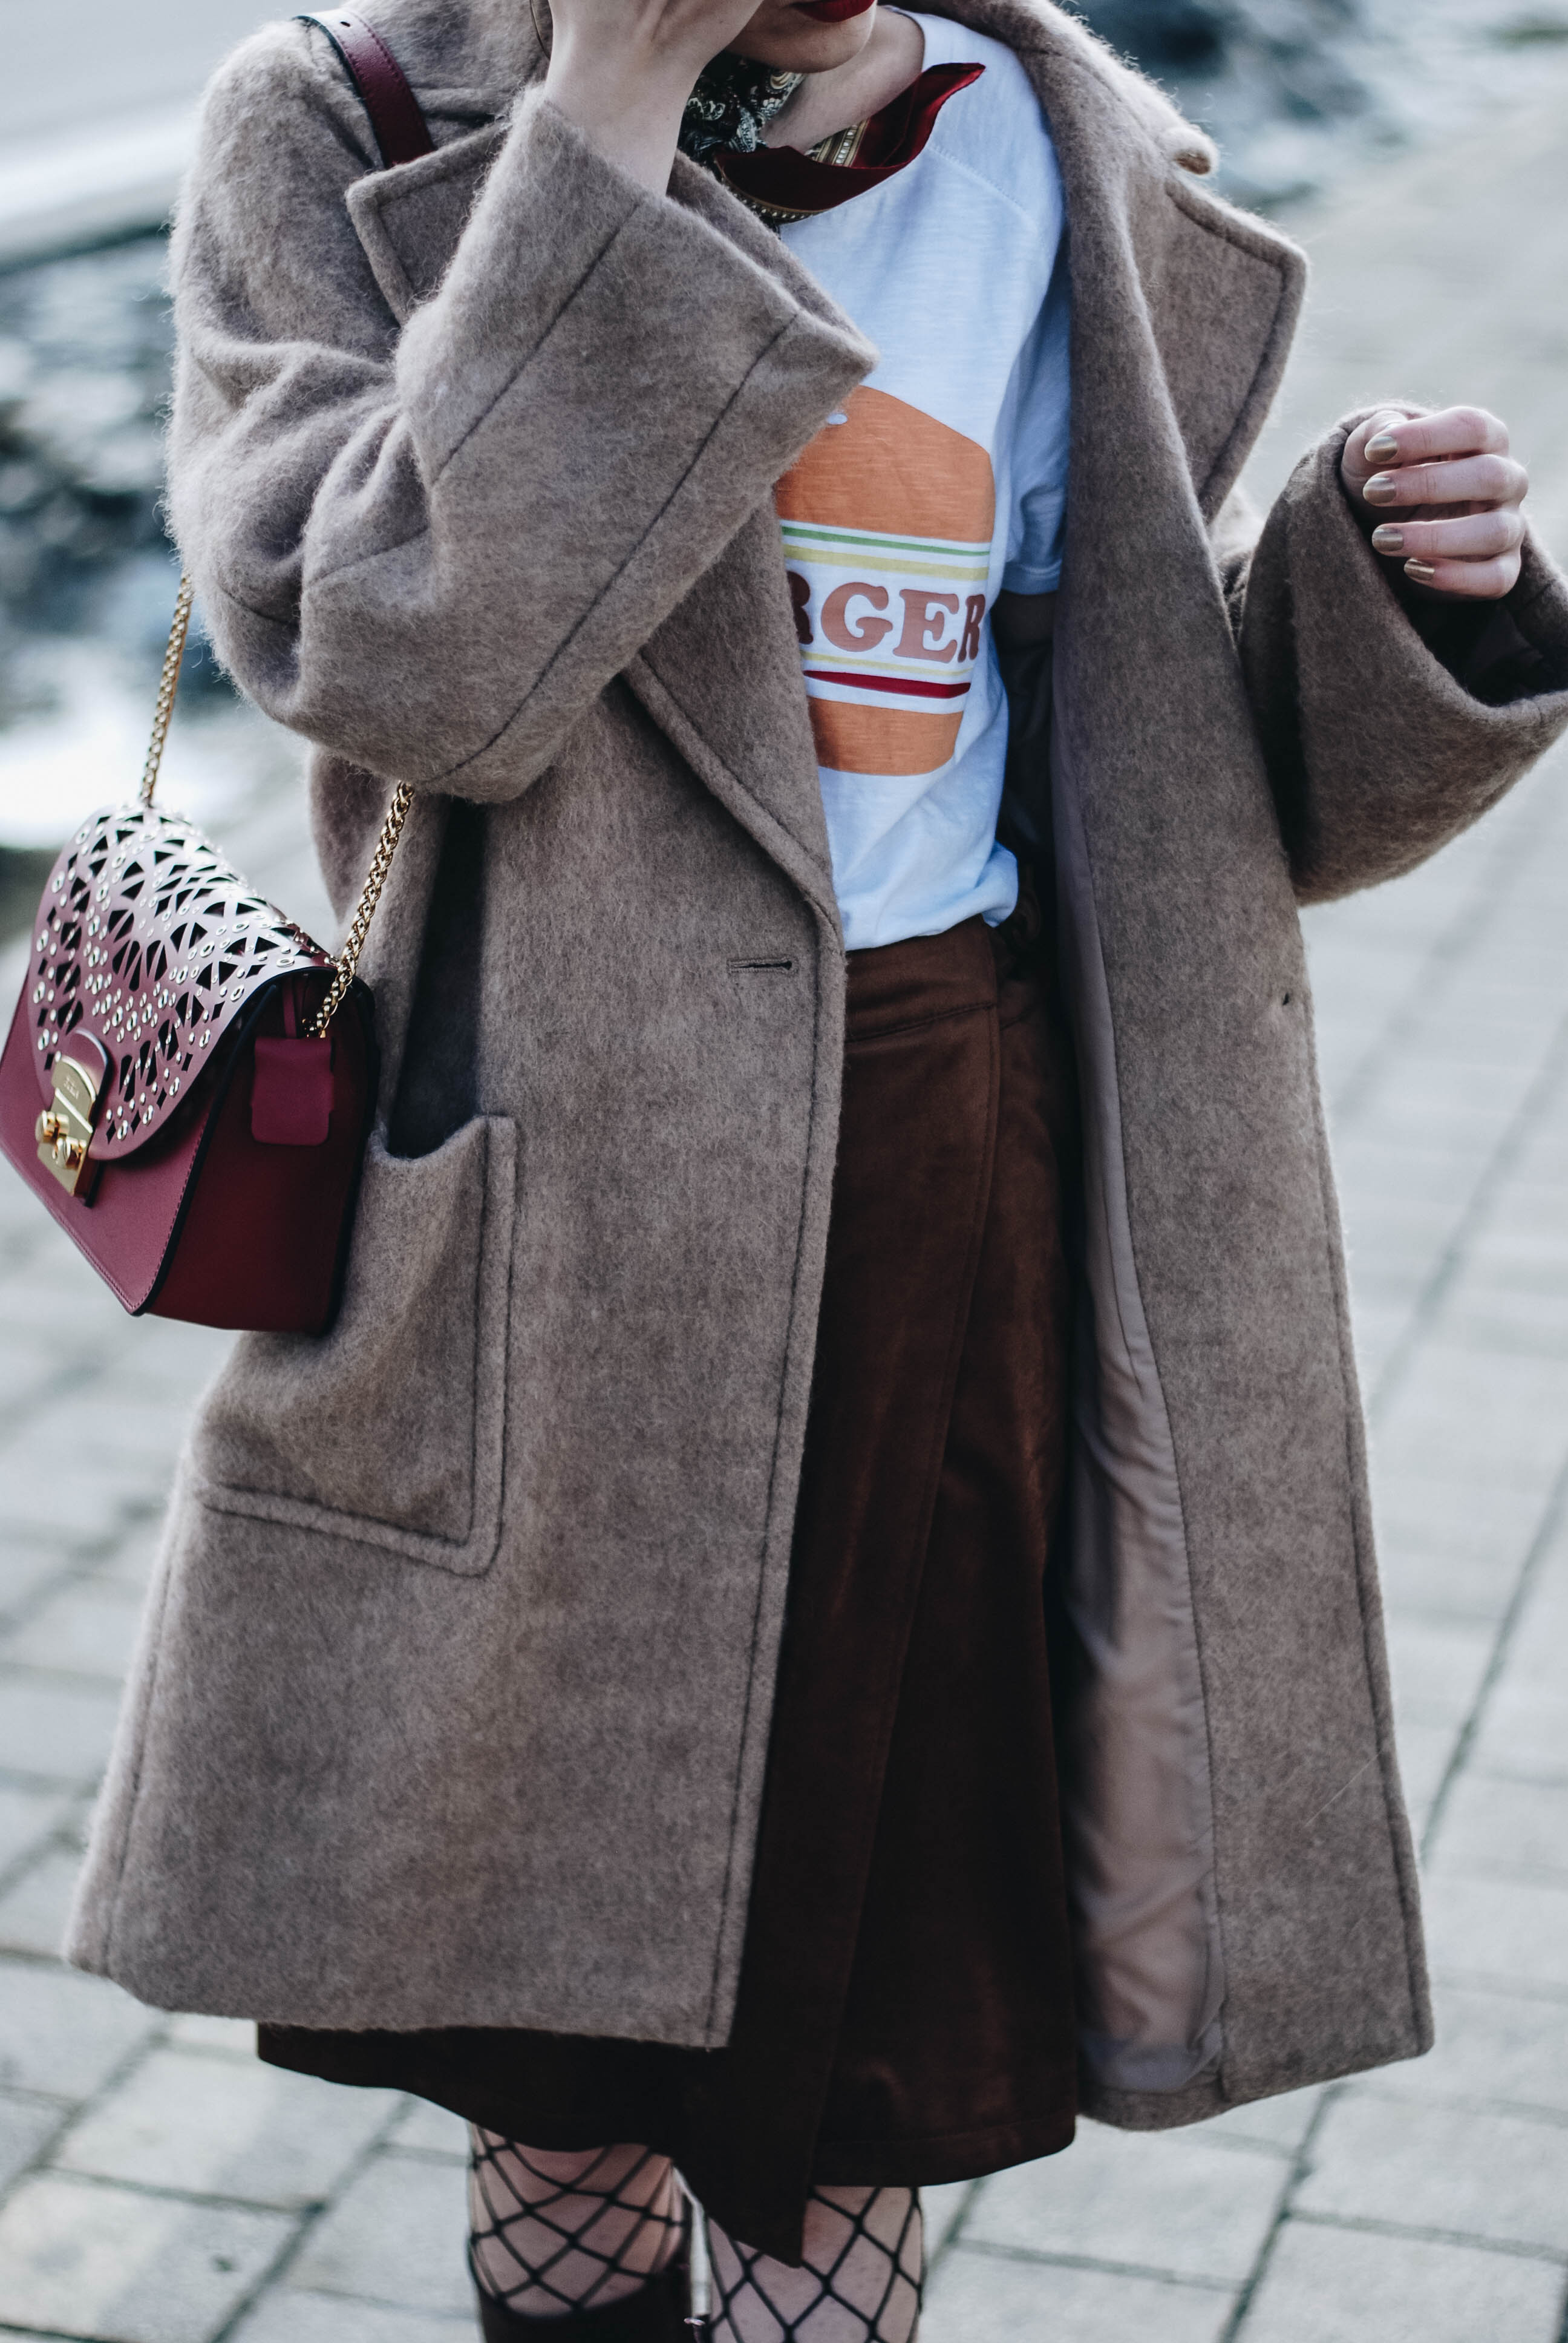 How To Wear A Wrap Skirt During Winter Couturezilla